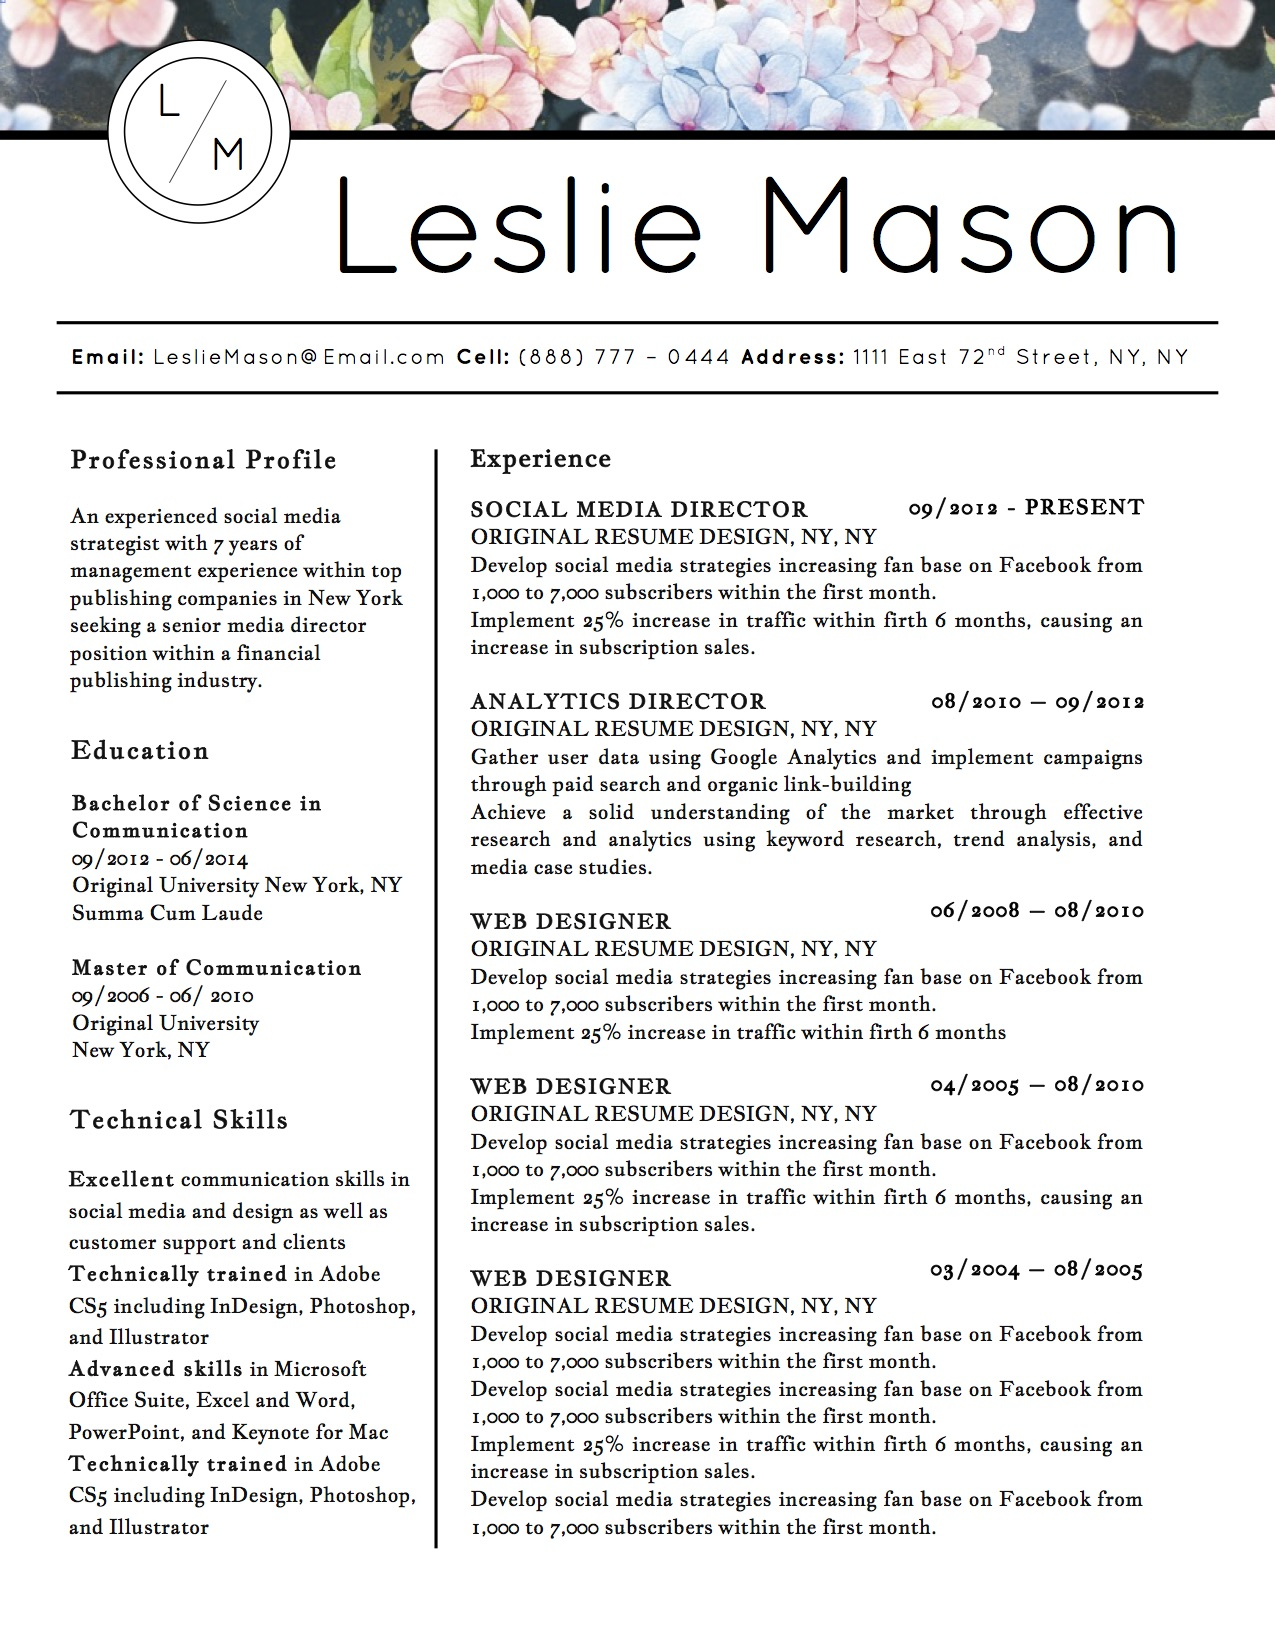 Leslie Mason Downloadable Resume + Cover Template and Cover Letter Template for Microsoft Word and Apple Pages. This cover letter template is perfect for anyone in the fashion field. The template's design is a modern, unique, colorful, and professional. WE SWEAT THE DETAILS, SO YOU DON'T HAVE TO Stand Out Shop resume templates for Microsoft Word and Apple Pages will help you design a modern and professional resume in minutes! Simply download, open in Microsoft Word or Apple Pages, and input your resume's information. Increase your chances of landing your dream job with a job winning, modern, simple, and scannable resume template for Microsoft Word and Apple Pages. Creating a resume shouldn't suck Simply download a resume template from Stand Out Shop, enter your information in Microsoft Word or Apple Pages and get a beautifully formatted resume in seconds. Create a unique and vivid resume in minutes. Make an impressive resume. Customize your own layout in Microsoft Word or Apple Pages and introduce yourself in an impressive way. You can download your resume at any time. Stand out from other job seekers with a beautiful professional design.